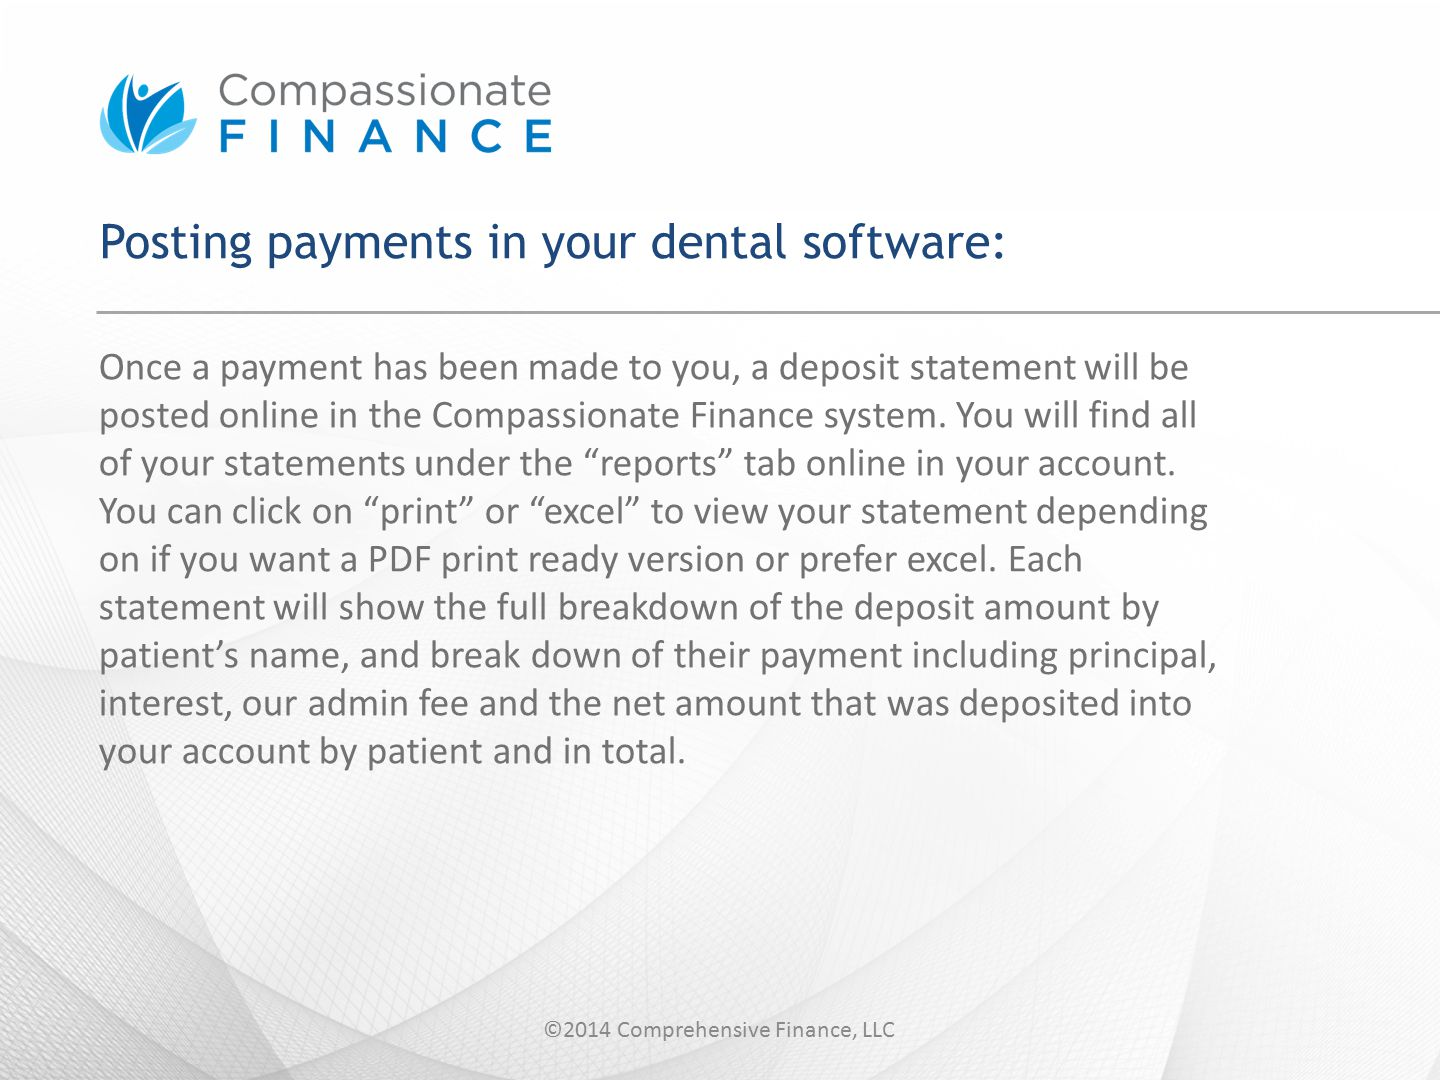 Posting payments in your dental software: Once a payment has been made to you, a deposit statement will be posted online in the Compassionate Finance system.